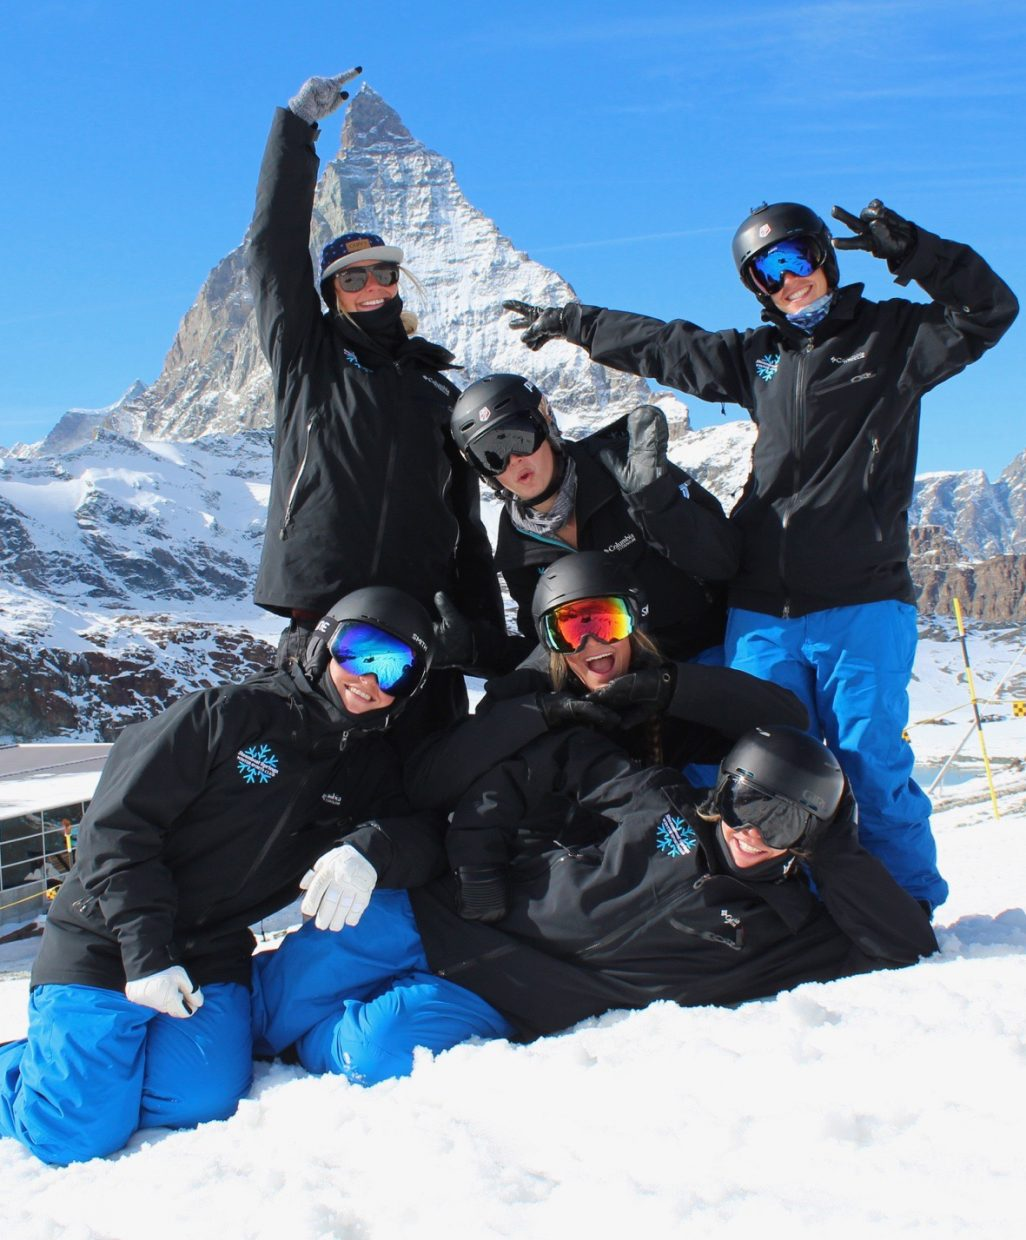 The Steamboat Springs Winter Sports Club's high-performance moguls team poses with the Matterhorn during a training camp in Switzerland last month. The squad, led by coach Kate Blamey, has five women, all harboring dreams of making it to the U.S. Ski Team.